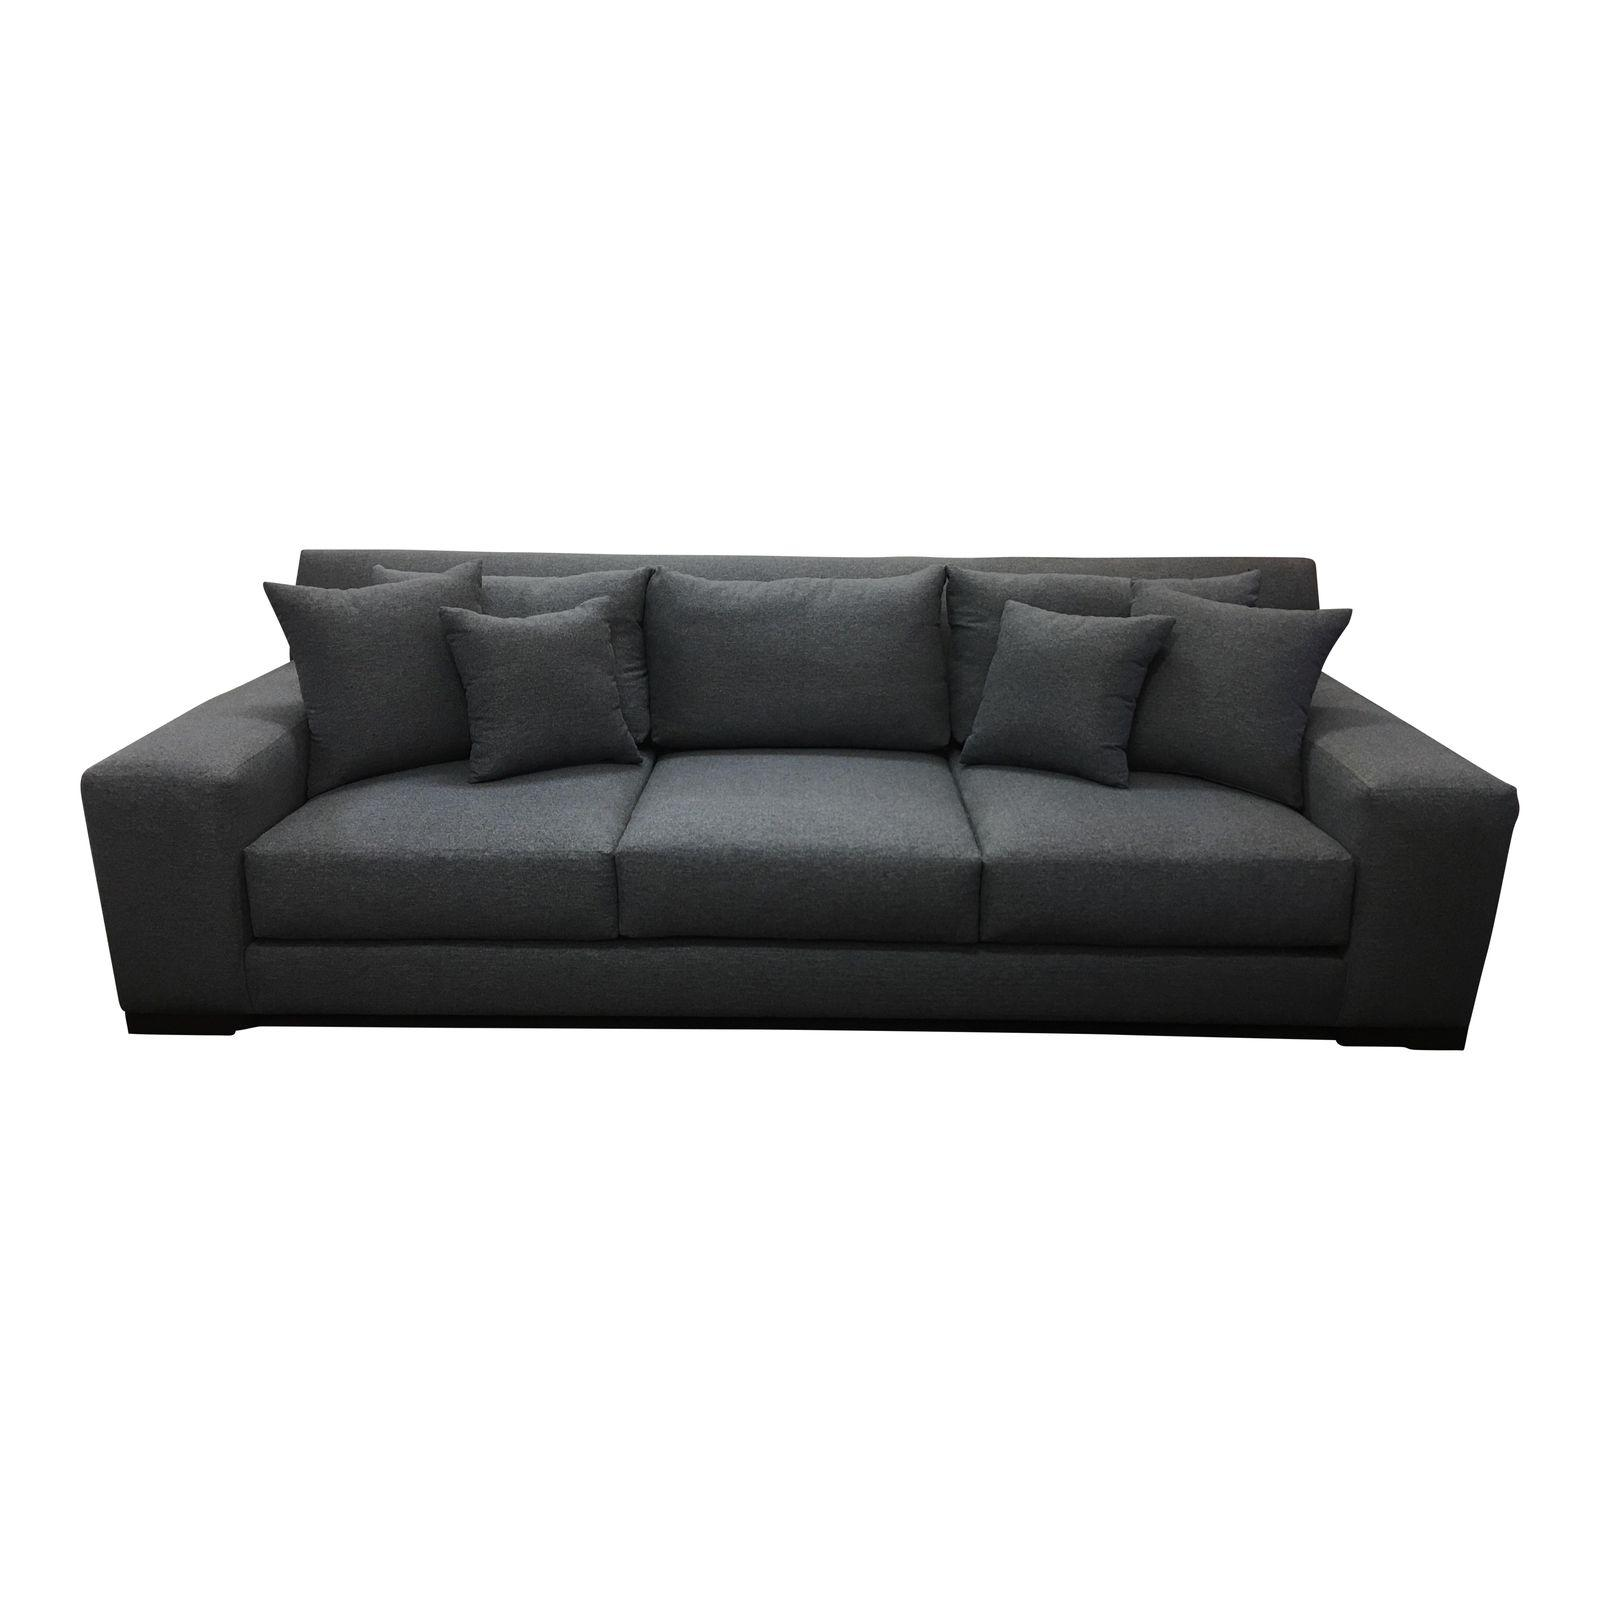 nathan anthony egoist sofa air bed review new bixby original price 6 132 00